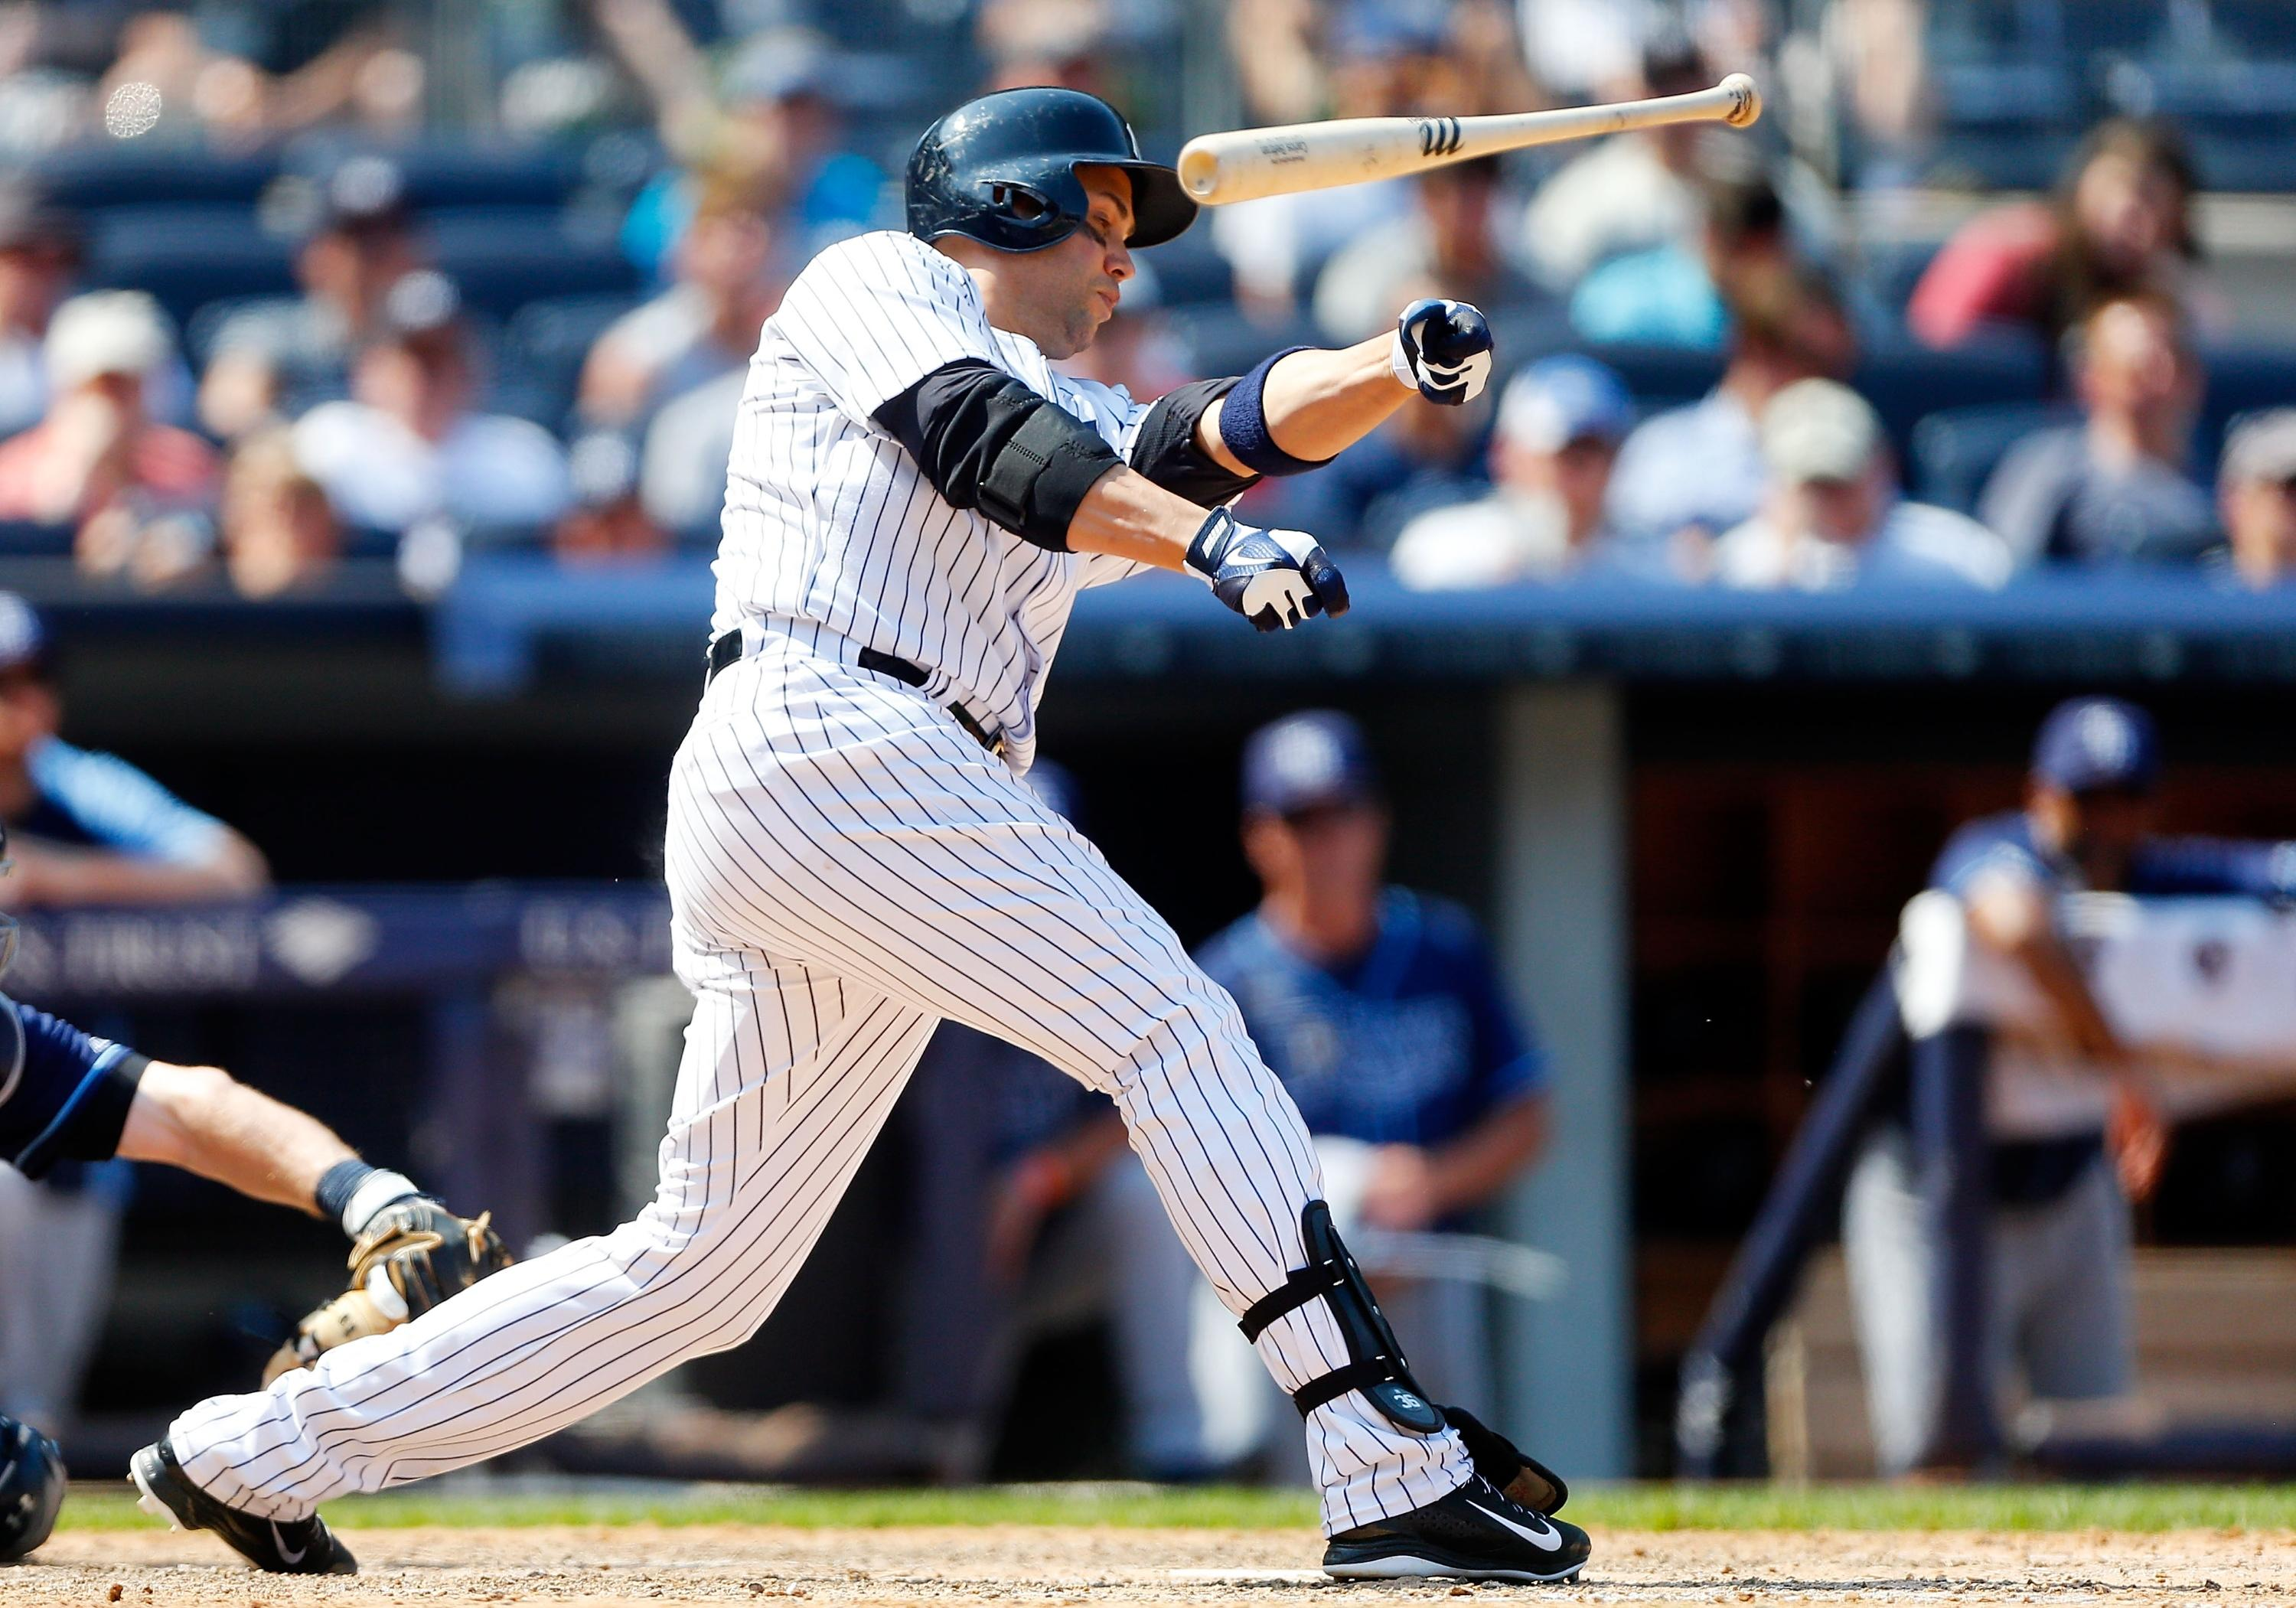 Carlos Beltran Suffers Two Small Facial Fractures After